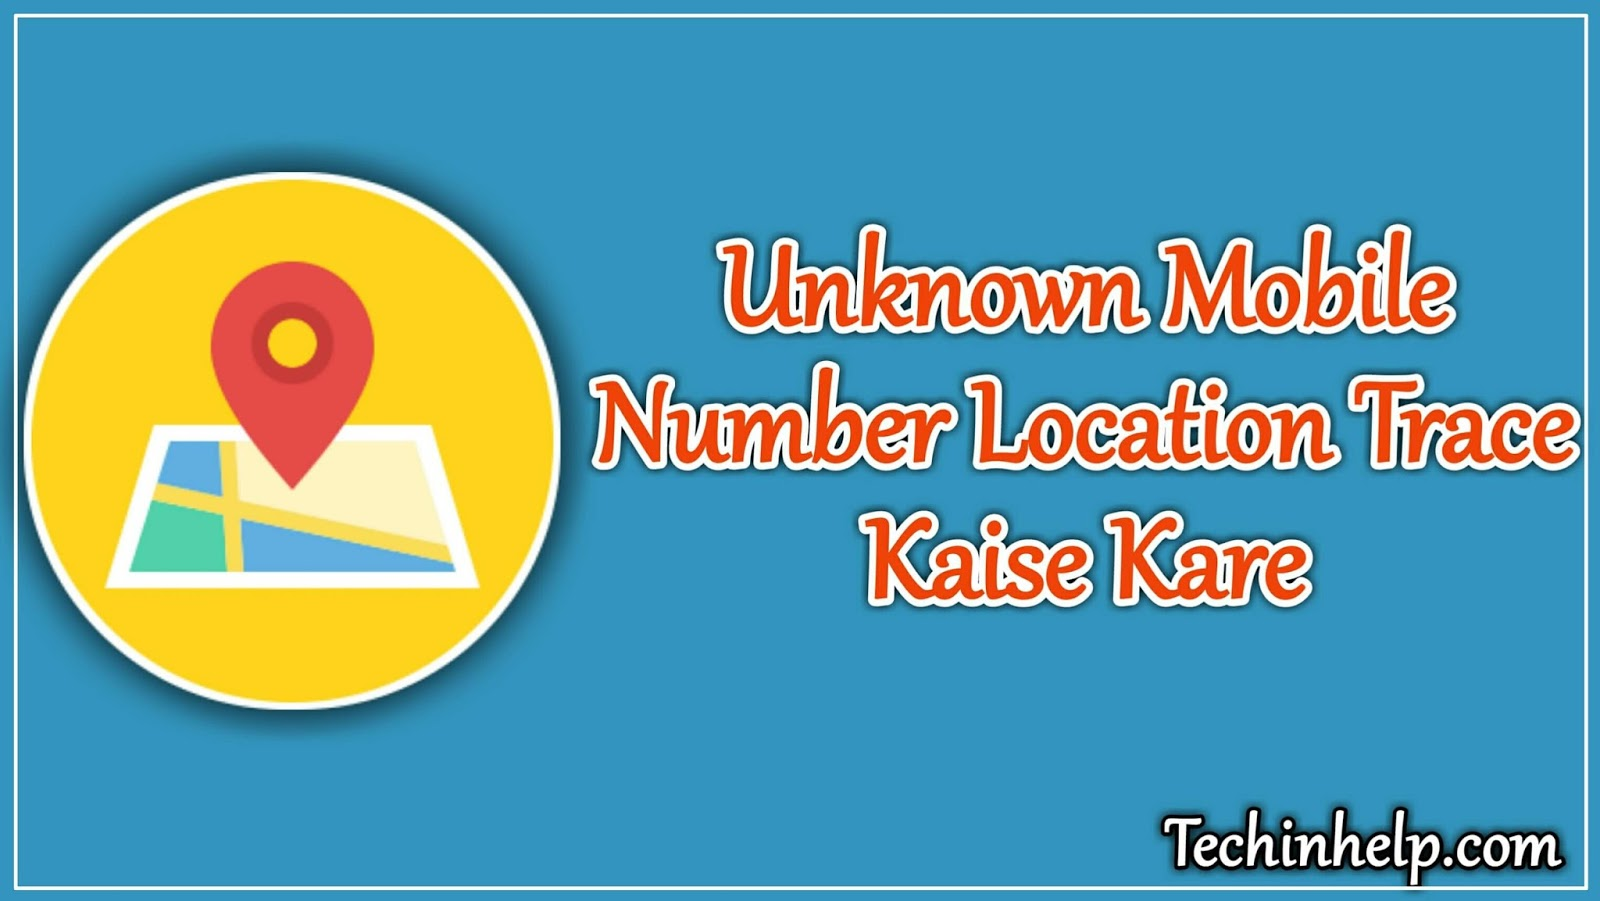 Unknown mobile number location Trace Kaise kare